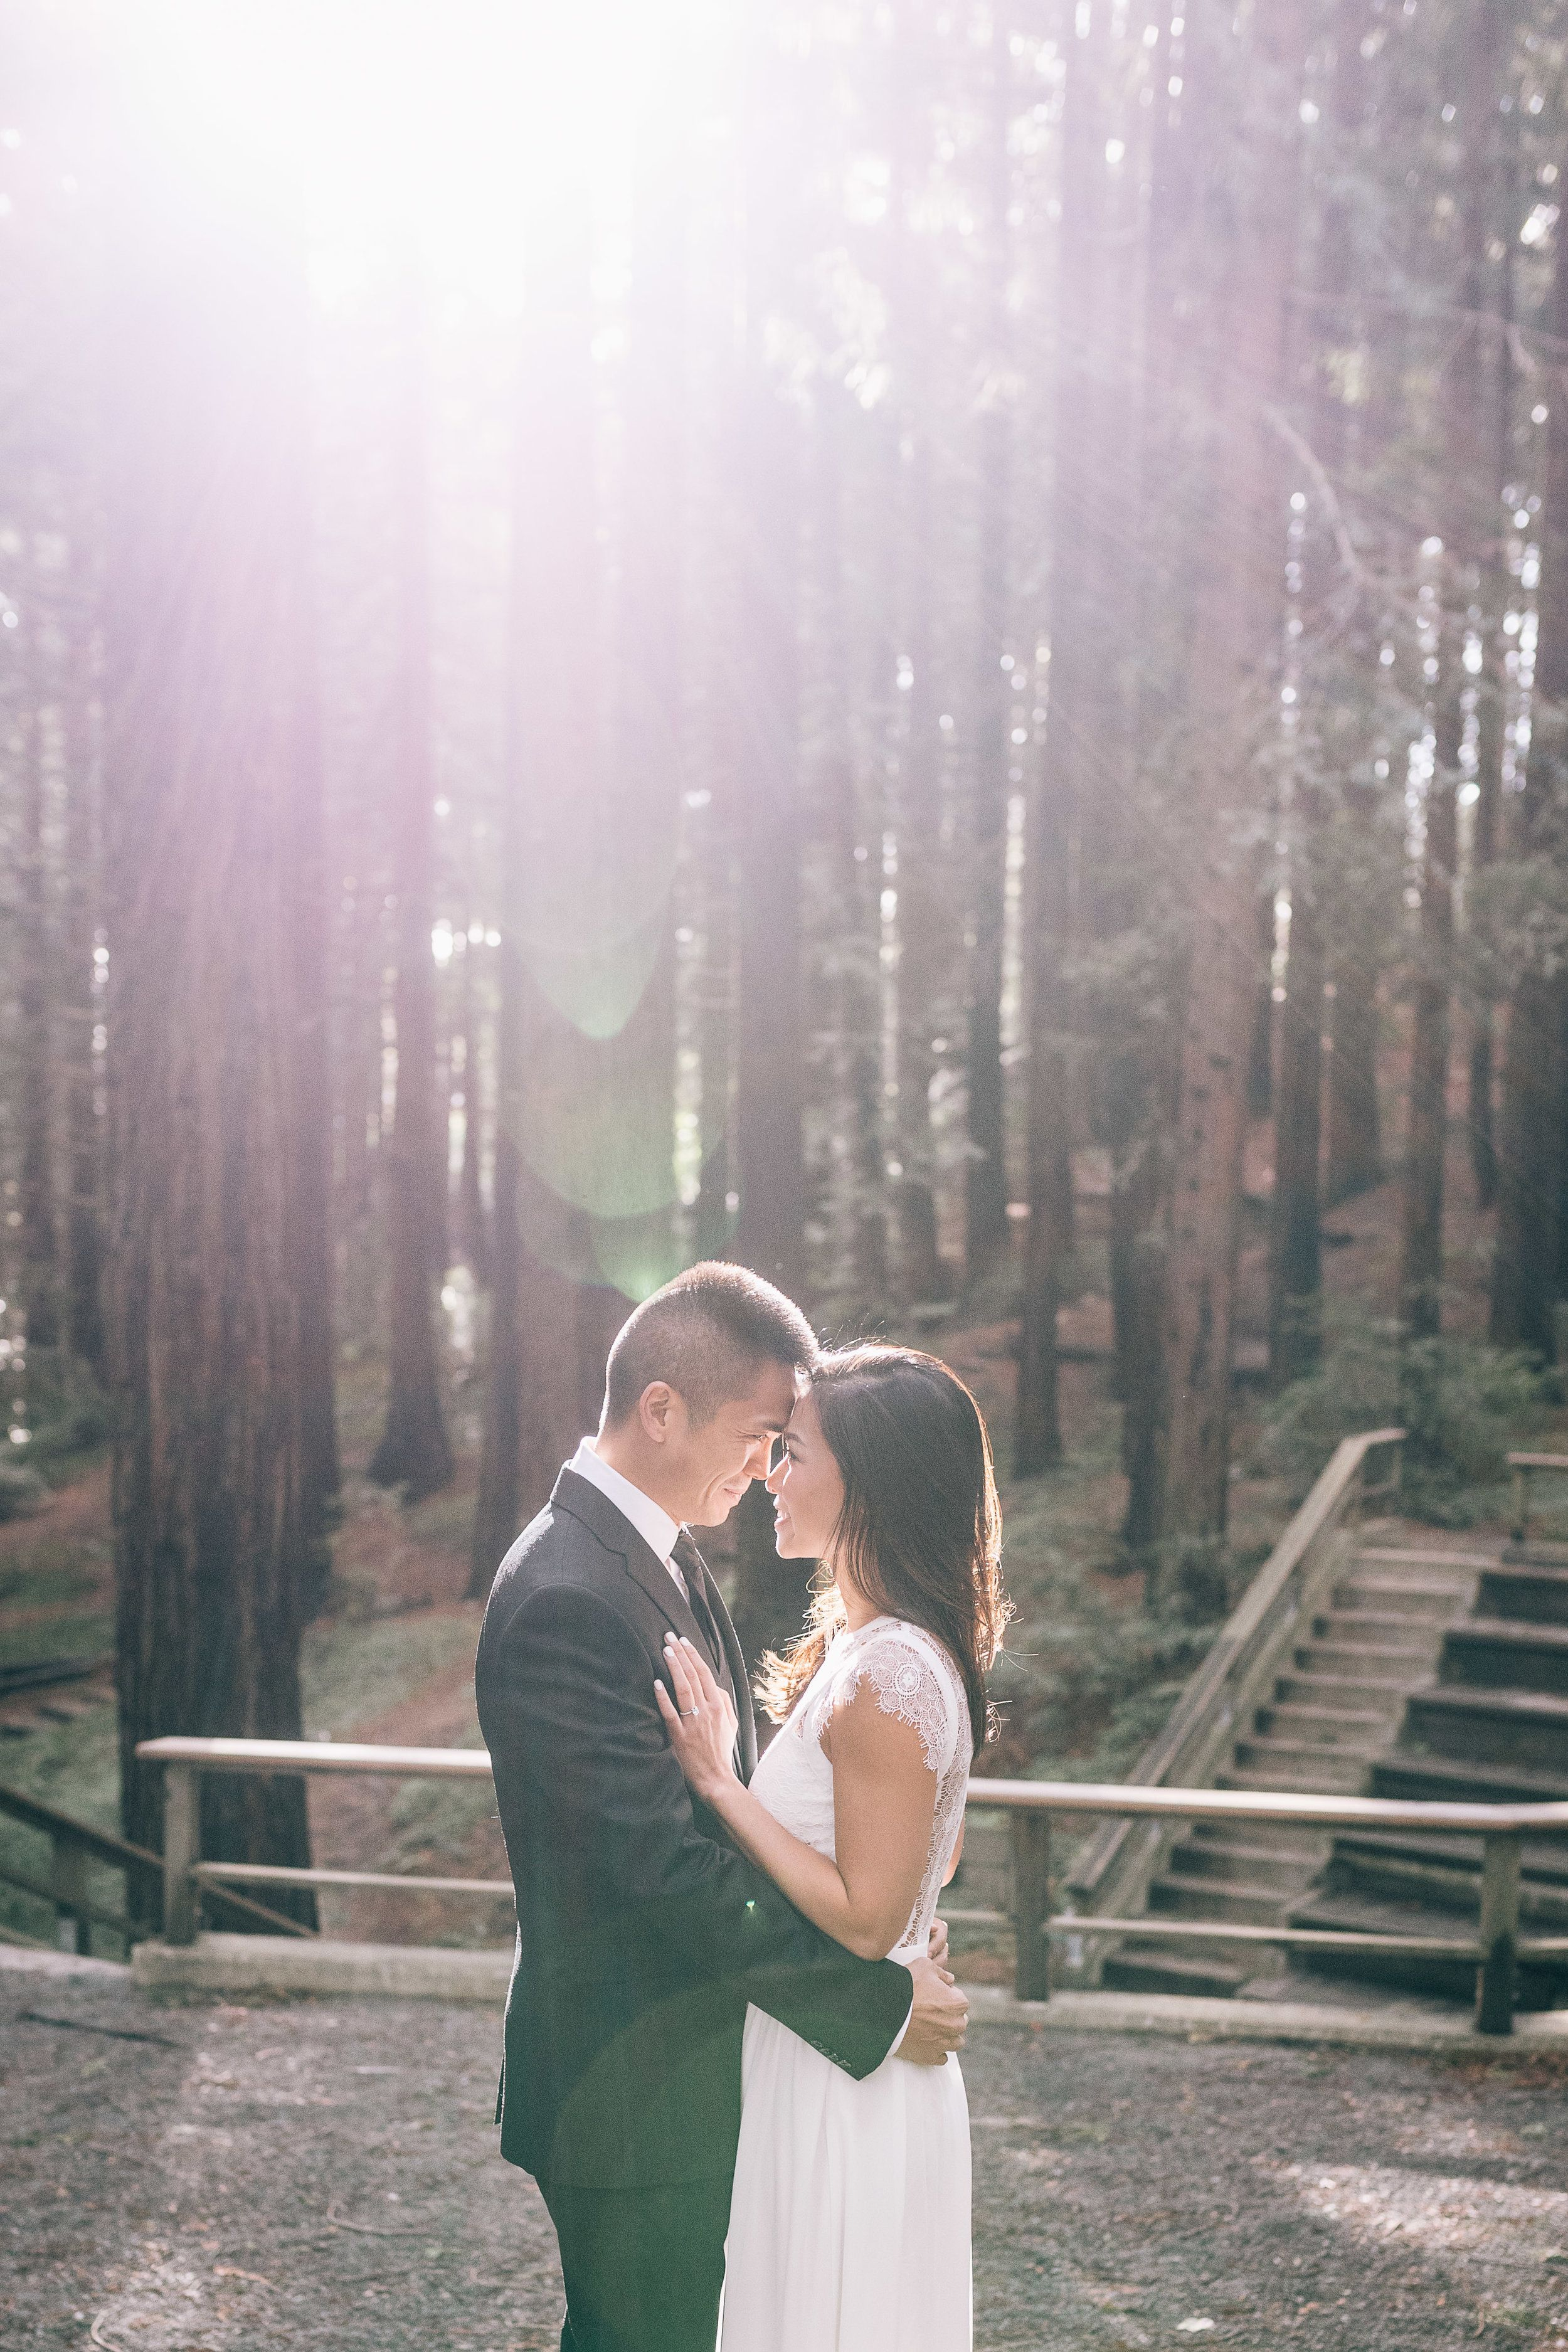 dreamy engagement session at the uc berkeley botanical garden and